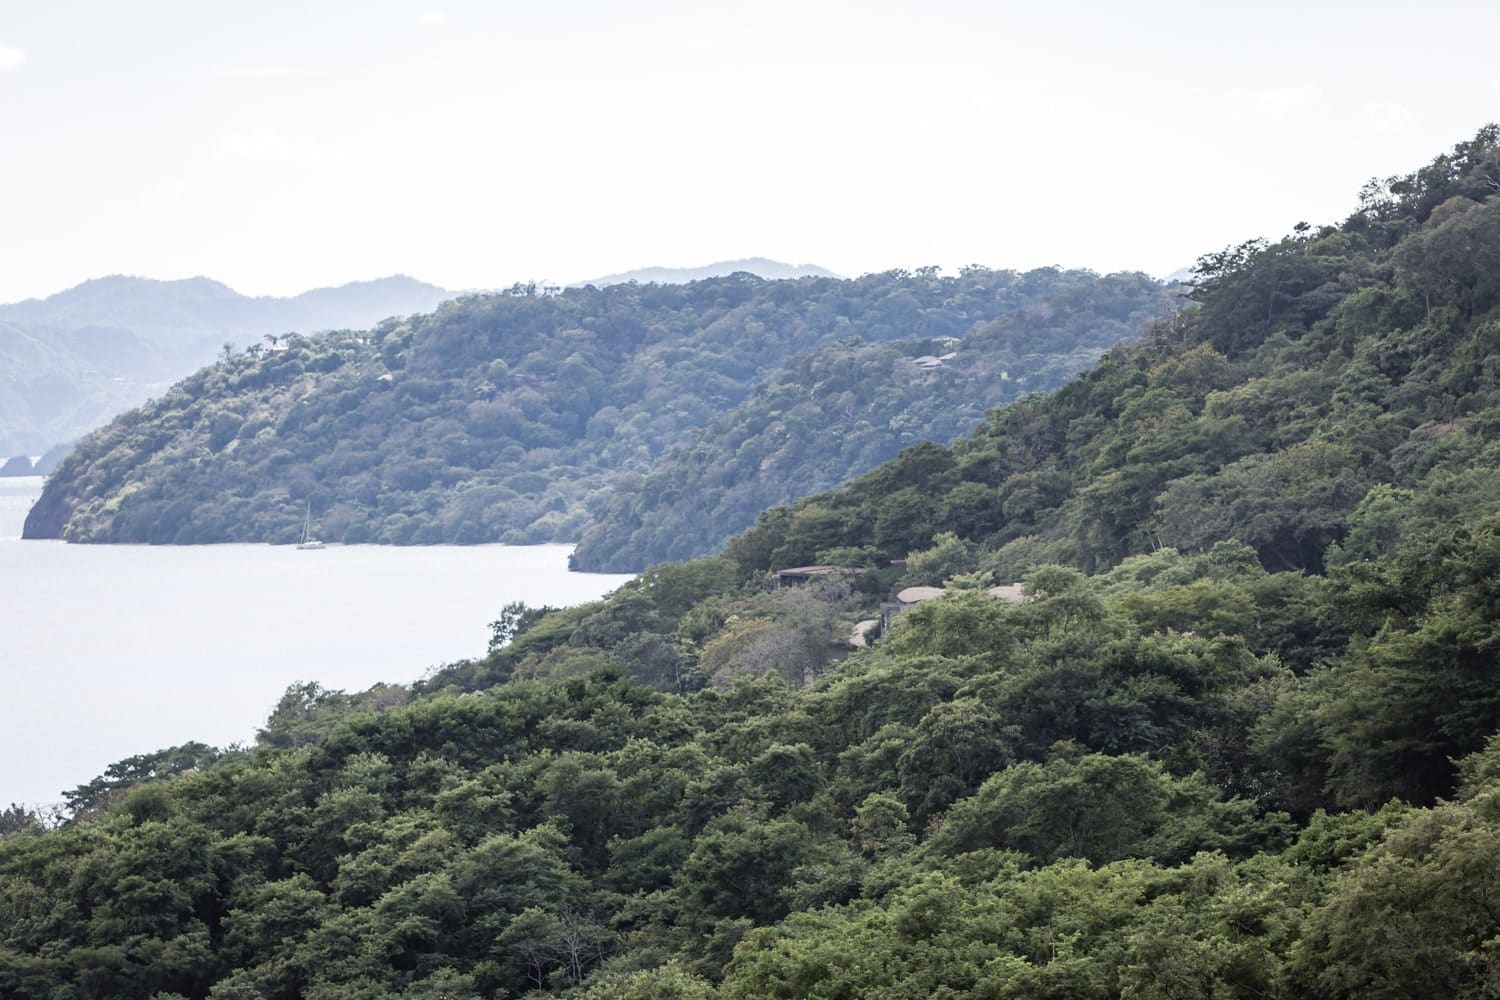 View of Andaz Papagayo from atop a nearby mountain.